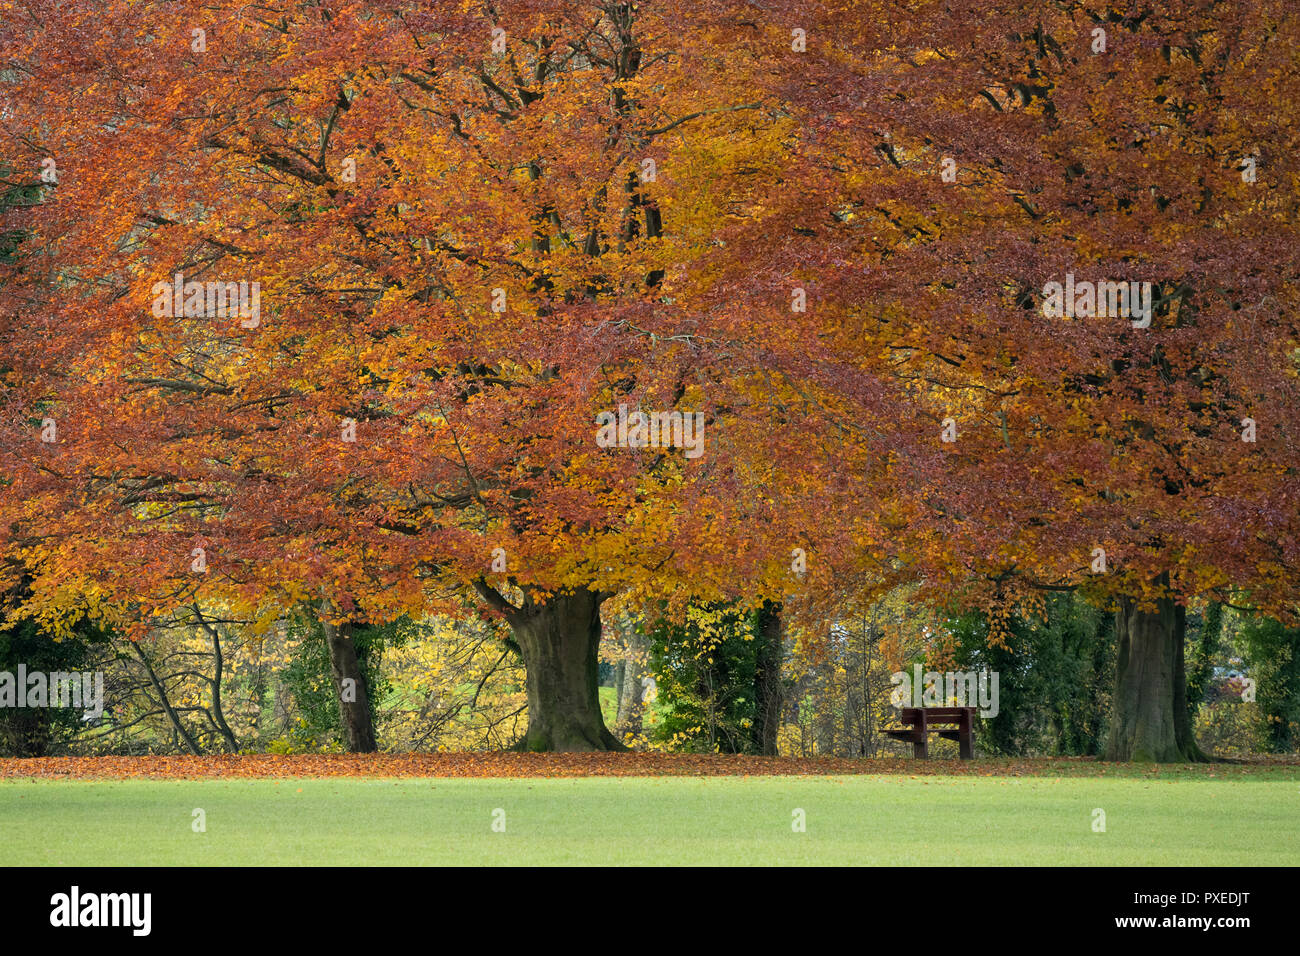 Line of enormous, spreading beech trees displaying rich autumn orange copper colours - by riverside, Ilkley Park, Ilkley, West Yorkshire, England, UK. - Stock Image